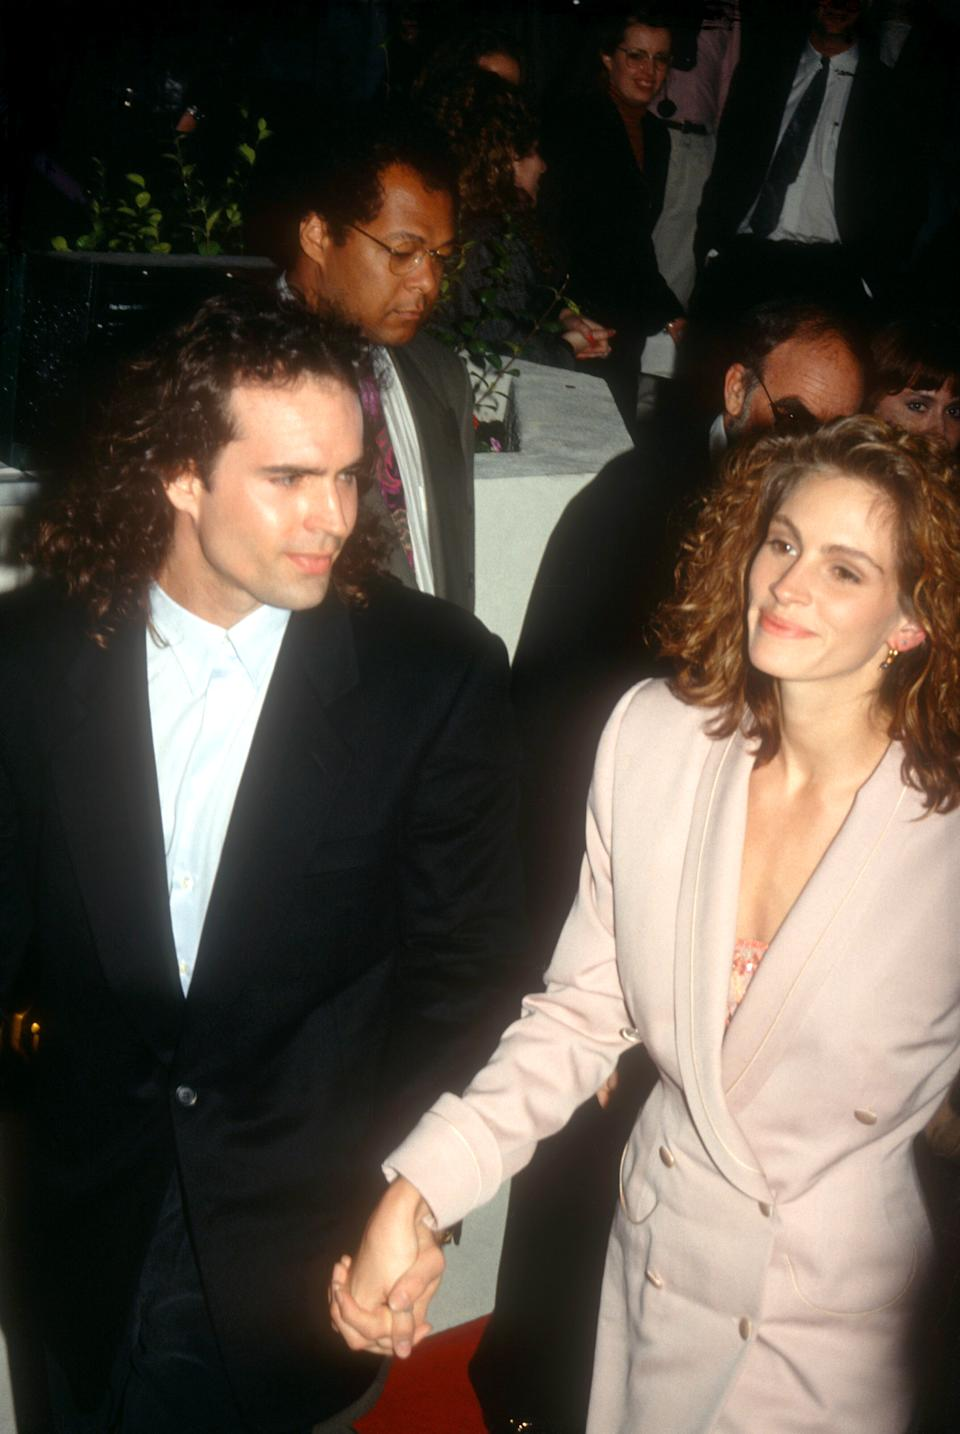 LOS ANGELES, CA - 1993:  Actor Jason Patric and girlfriend actress Julia Roberts arrive at an event circa 1993 in Los Angeles, California.  (Photo by Ron Davis/Getty Images)